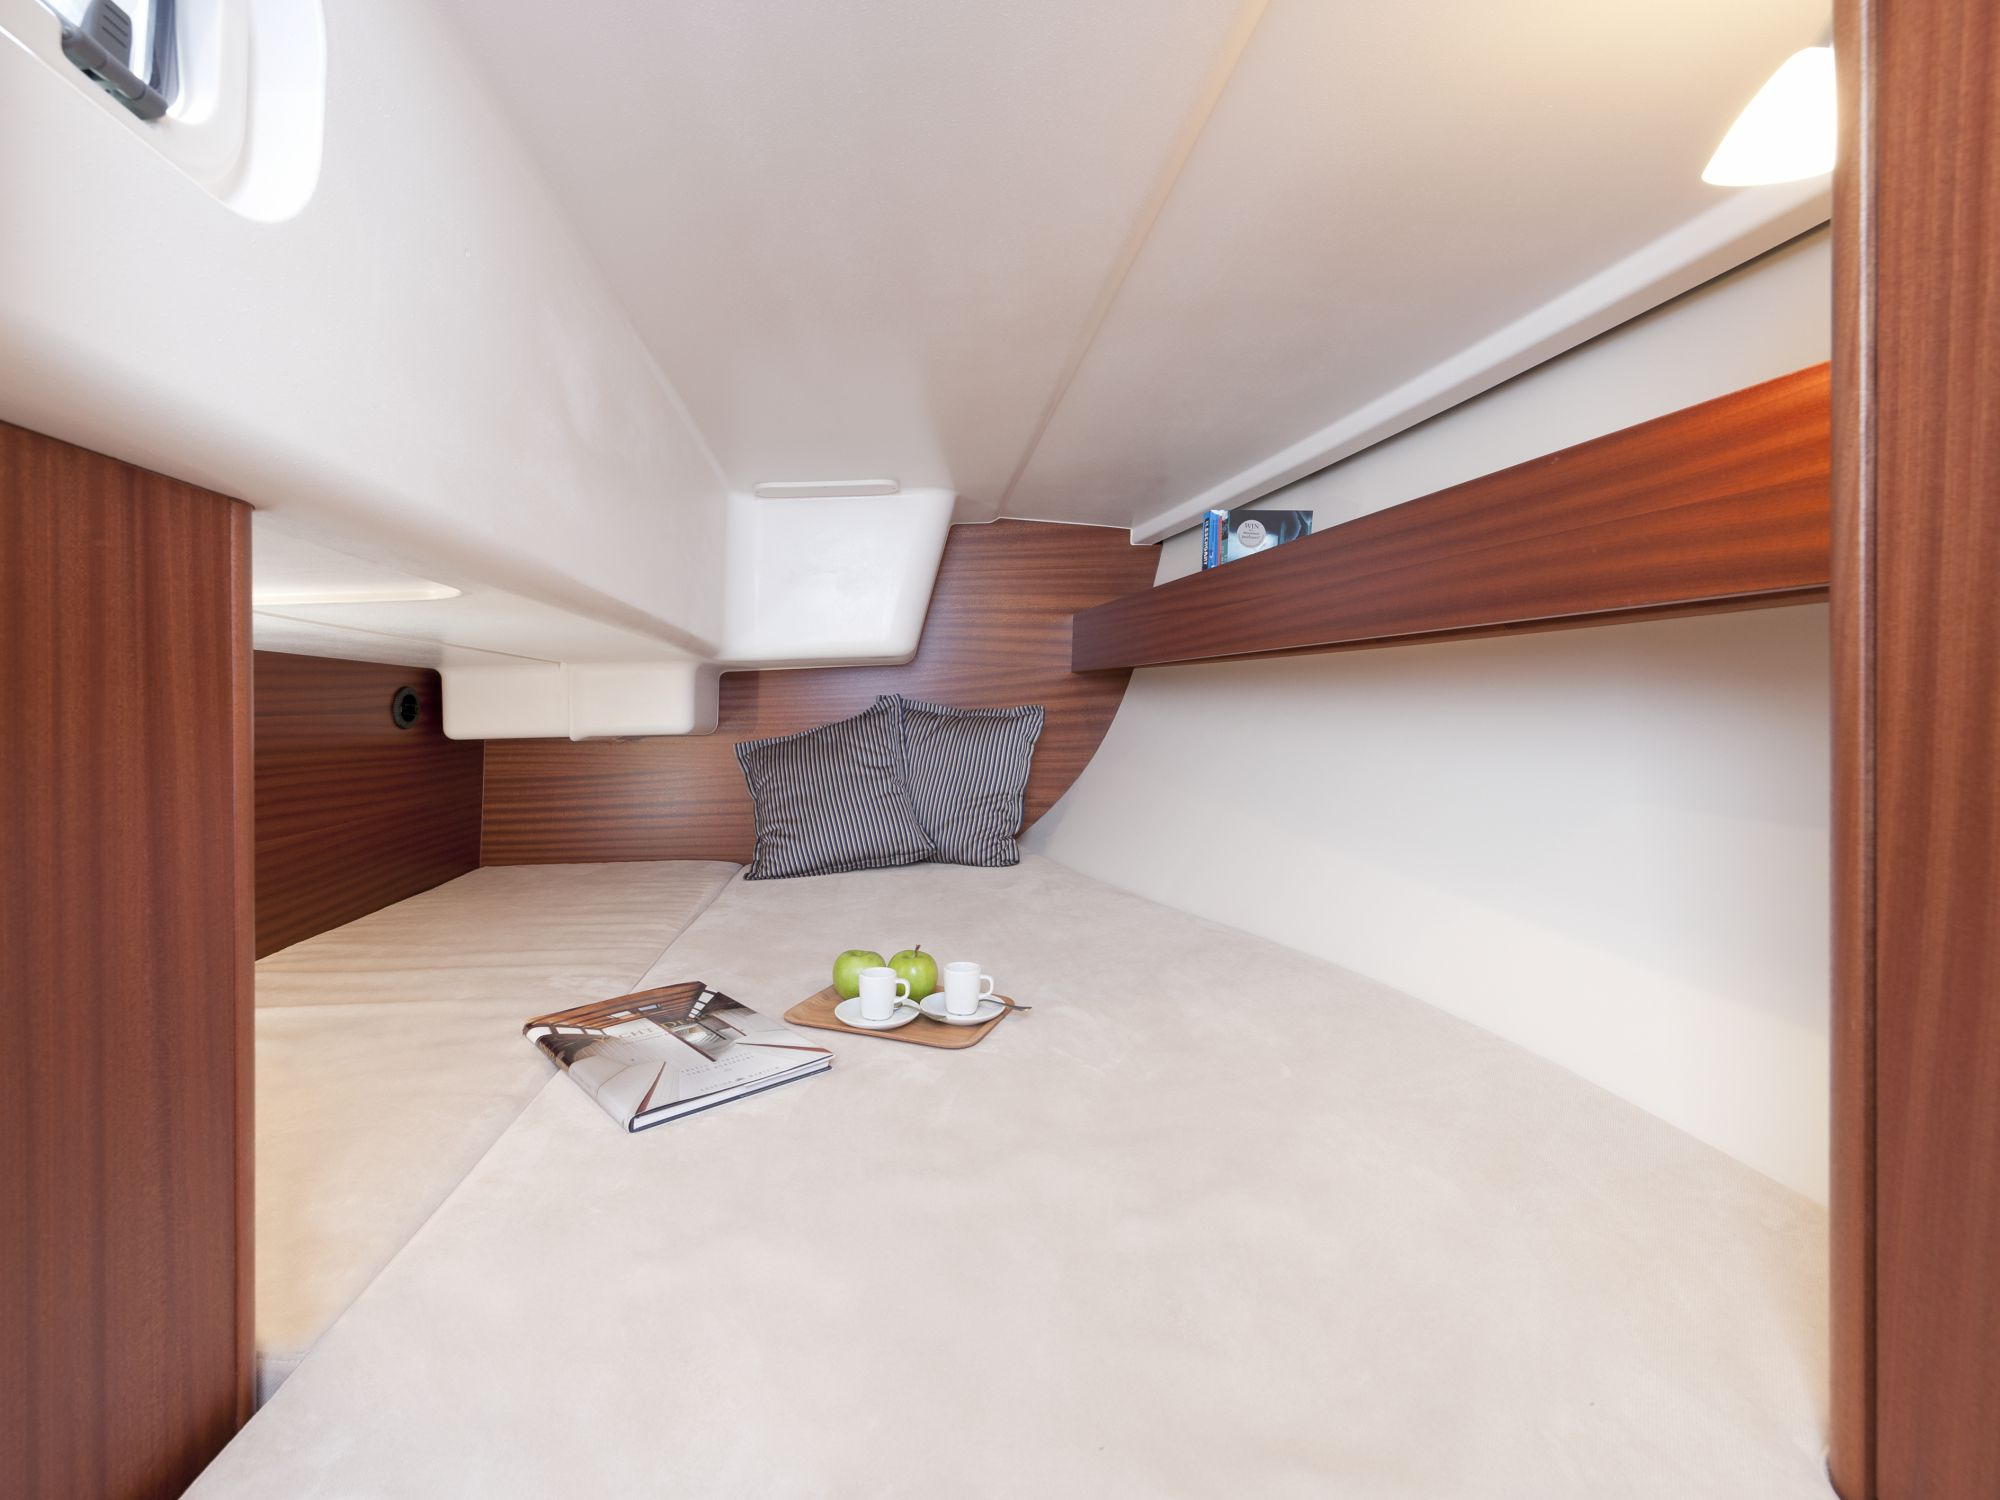 Boat Sailboats 30 ft - 35 ft Interior